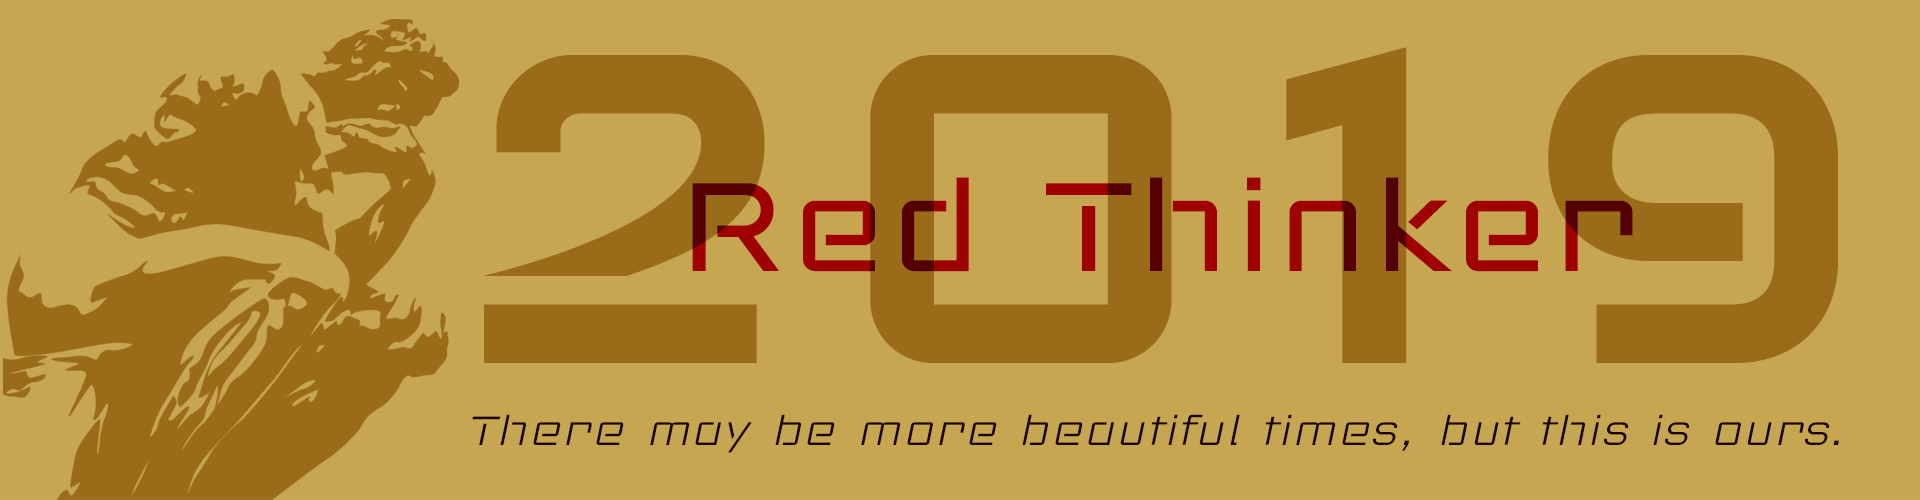 Red Thinker techno fonts. There may be more beatiful times, but this is ours.